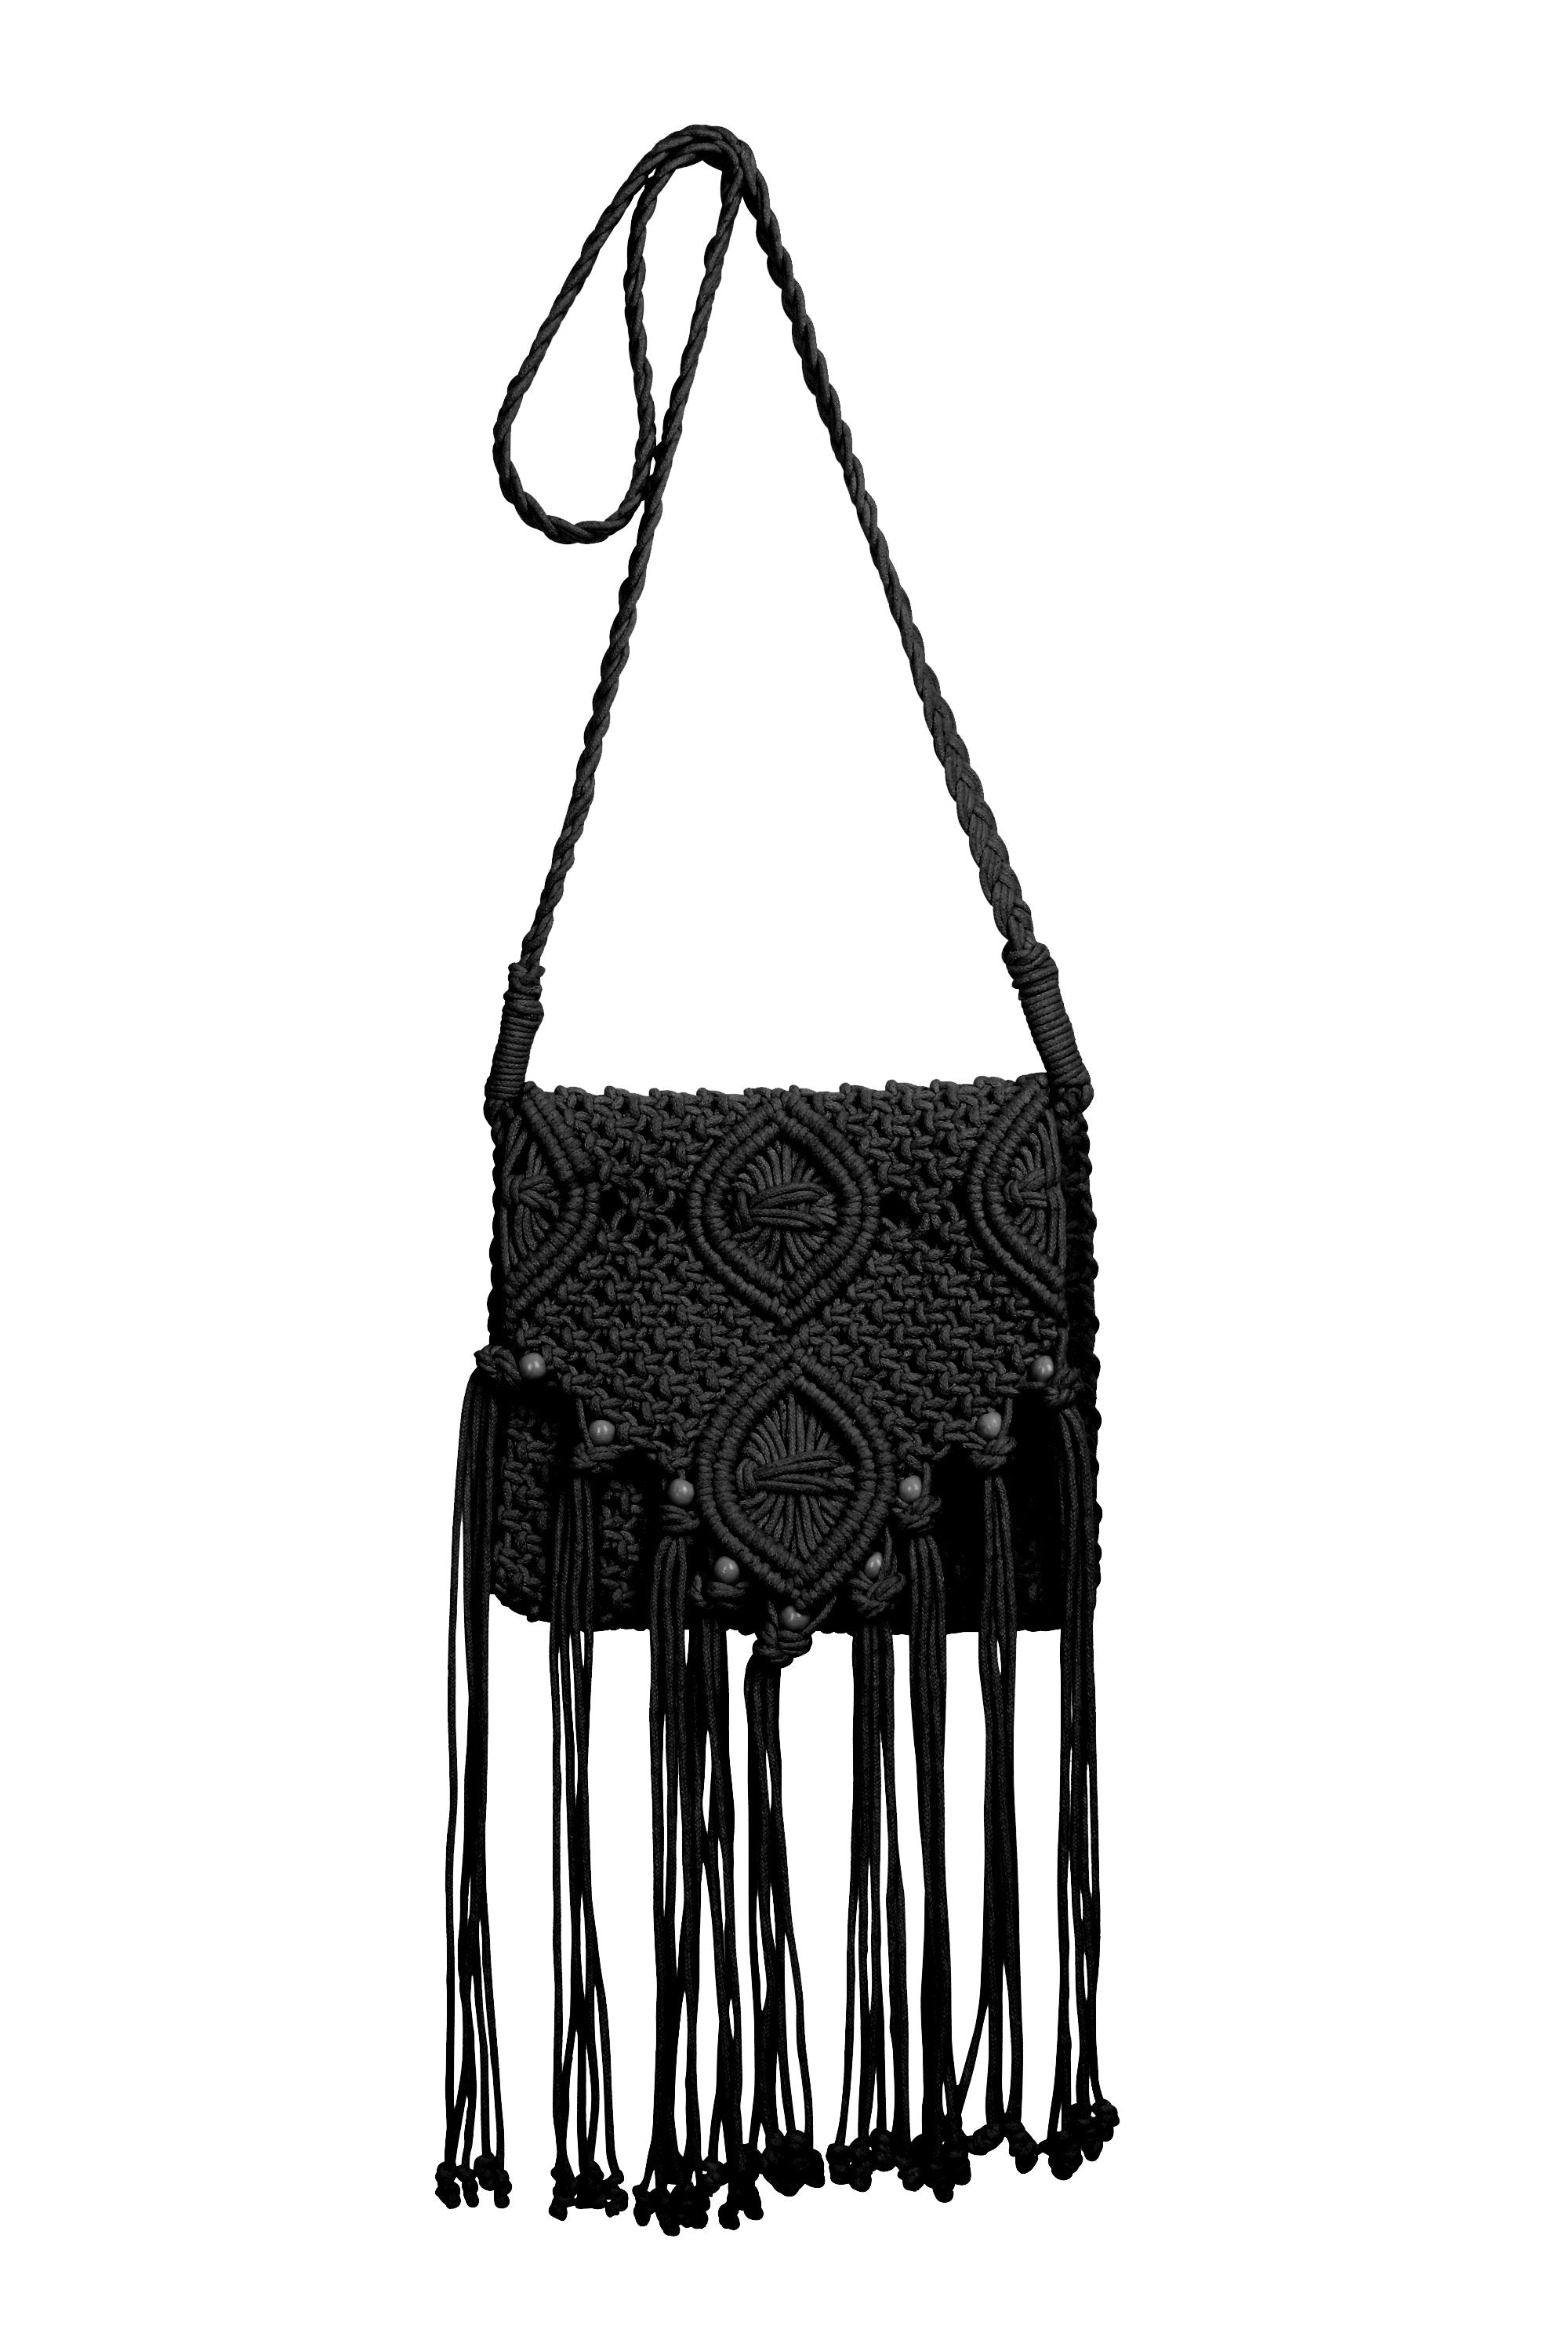 SIENNA Bag Black